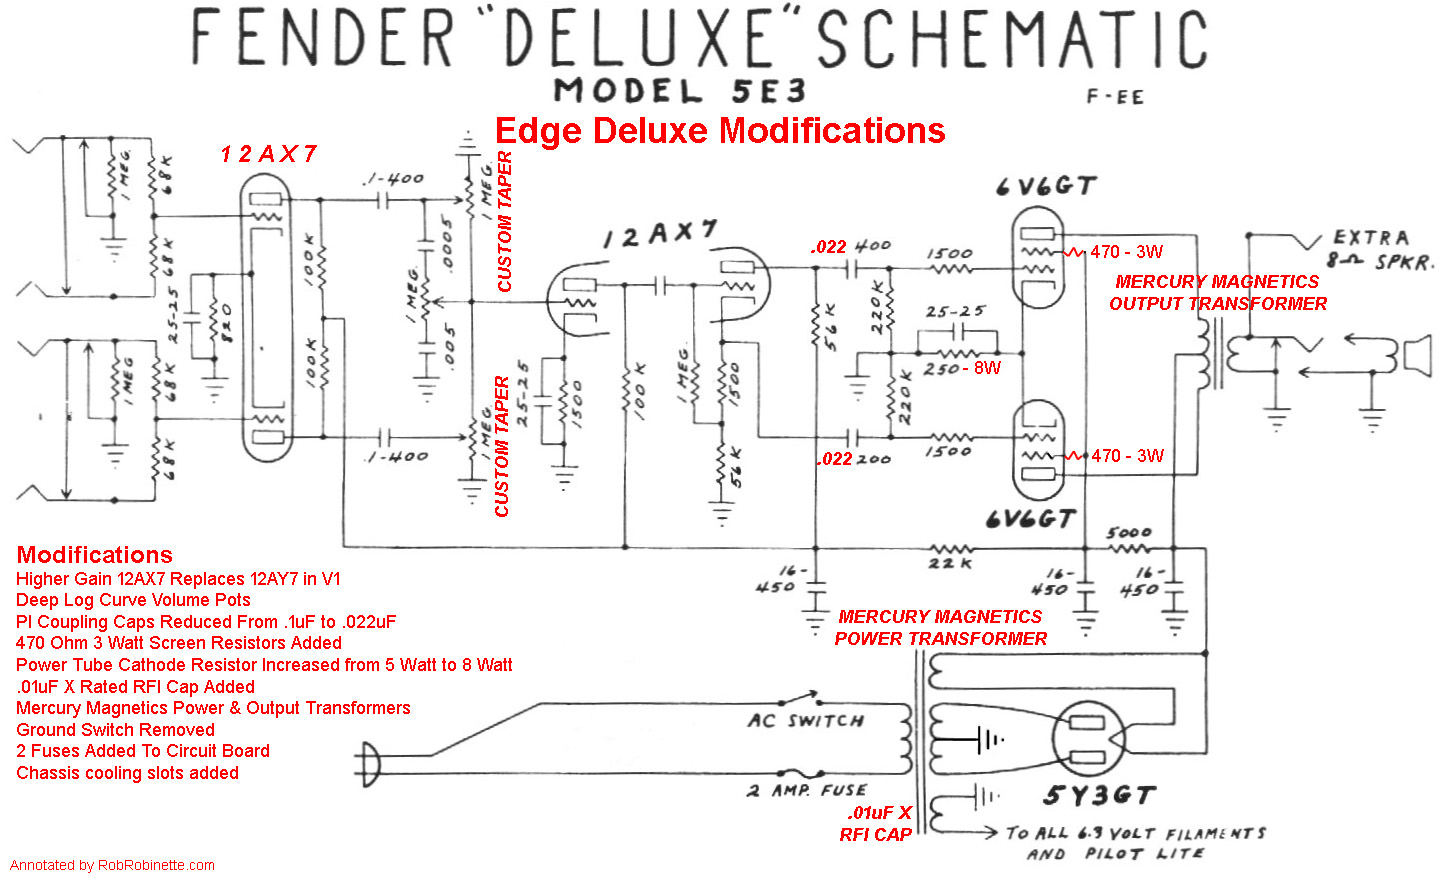 5e3 Mods Electronics Schematics Depot Audio Tone Generator Both Volume Pots Phase Inverter Caps And The V1 Preamp Are Different From A Standard Deluxe Transformers Mercury Magnetics